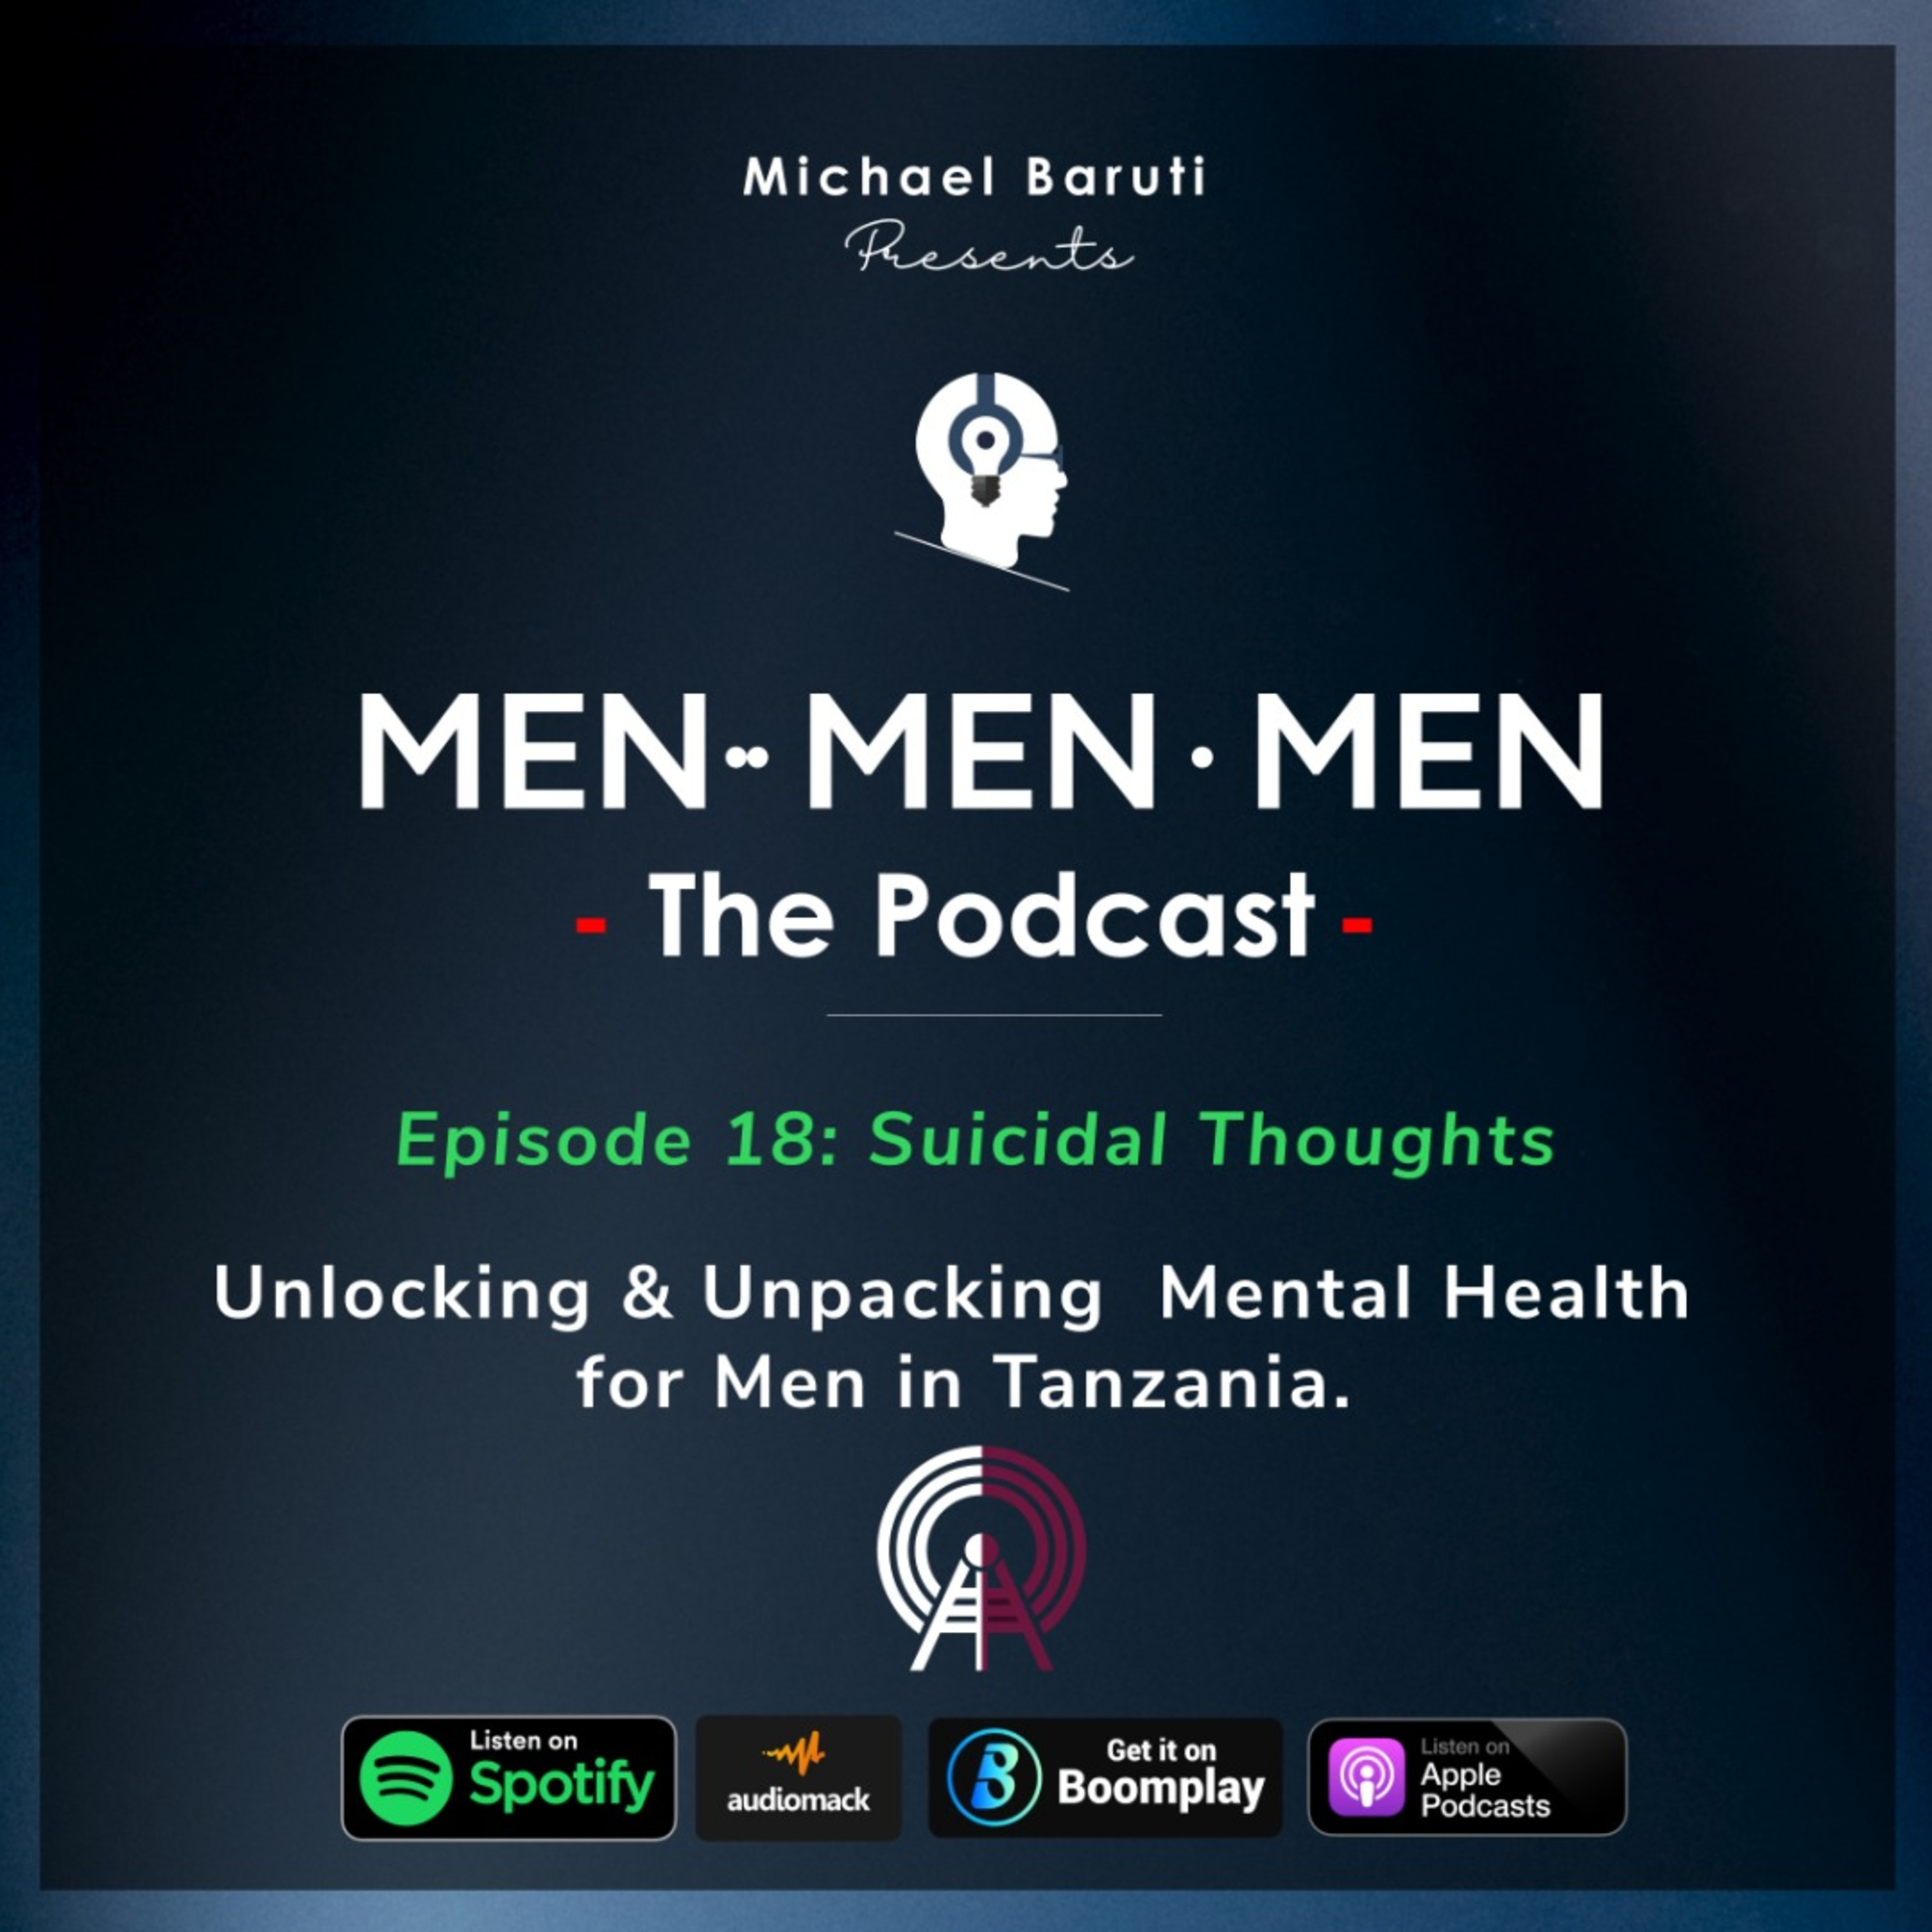 Men The Podcast - Ep 18 - Suicidal Thoughts